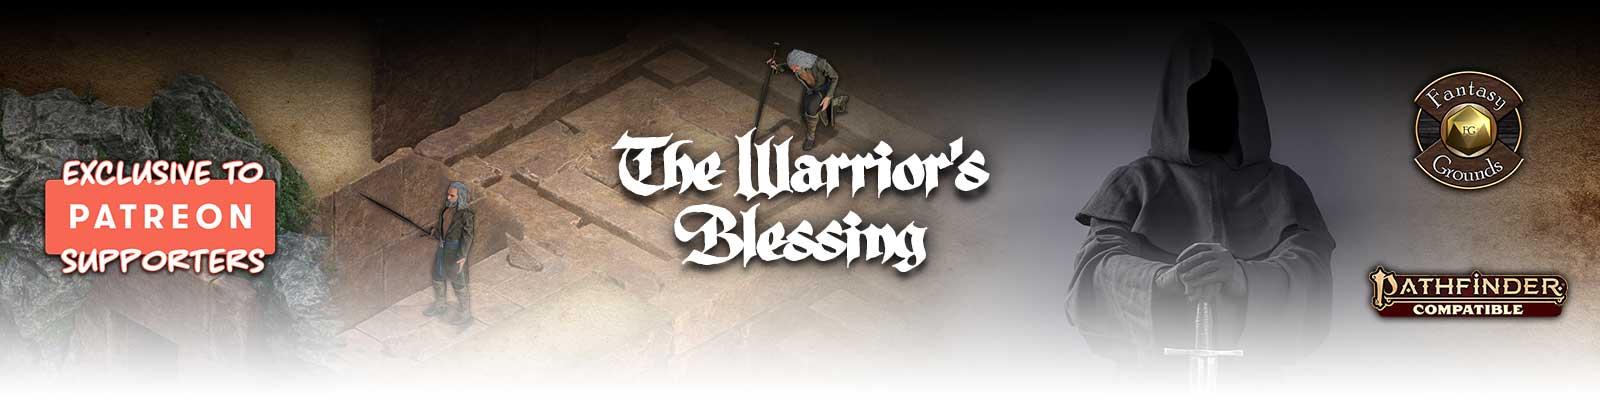 The Warrior's Blessing